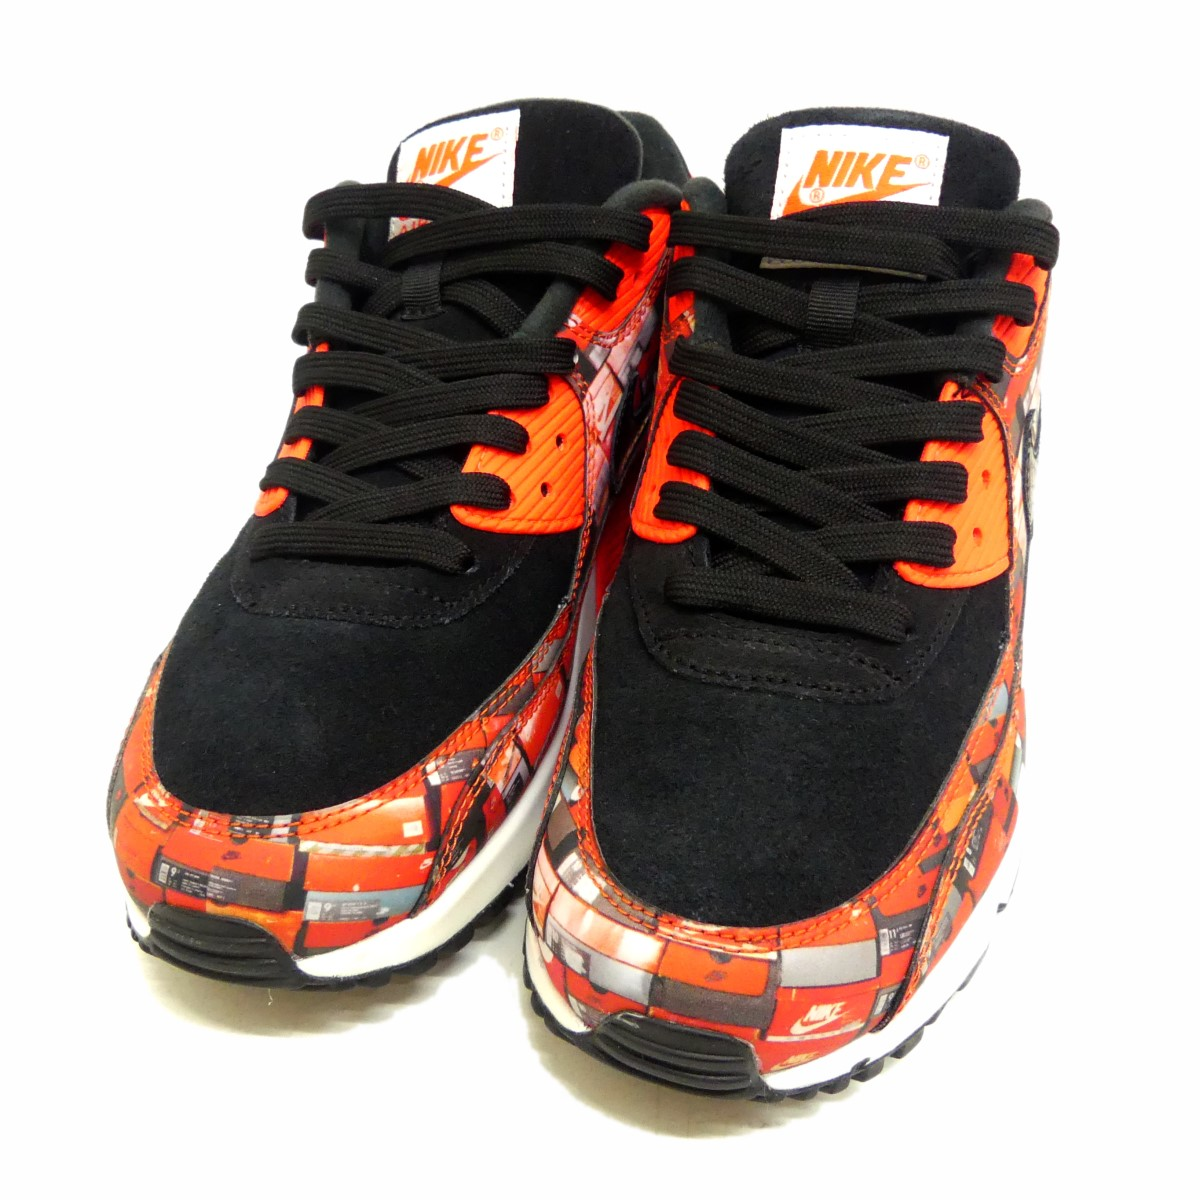 NIKE AIR MAX 90 PRNT sneakers red X black size: 26. 5cm (Nike)